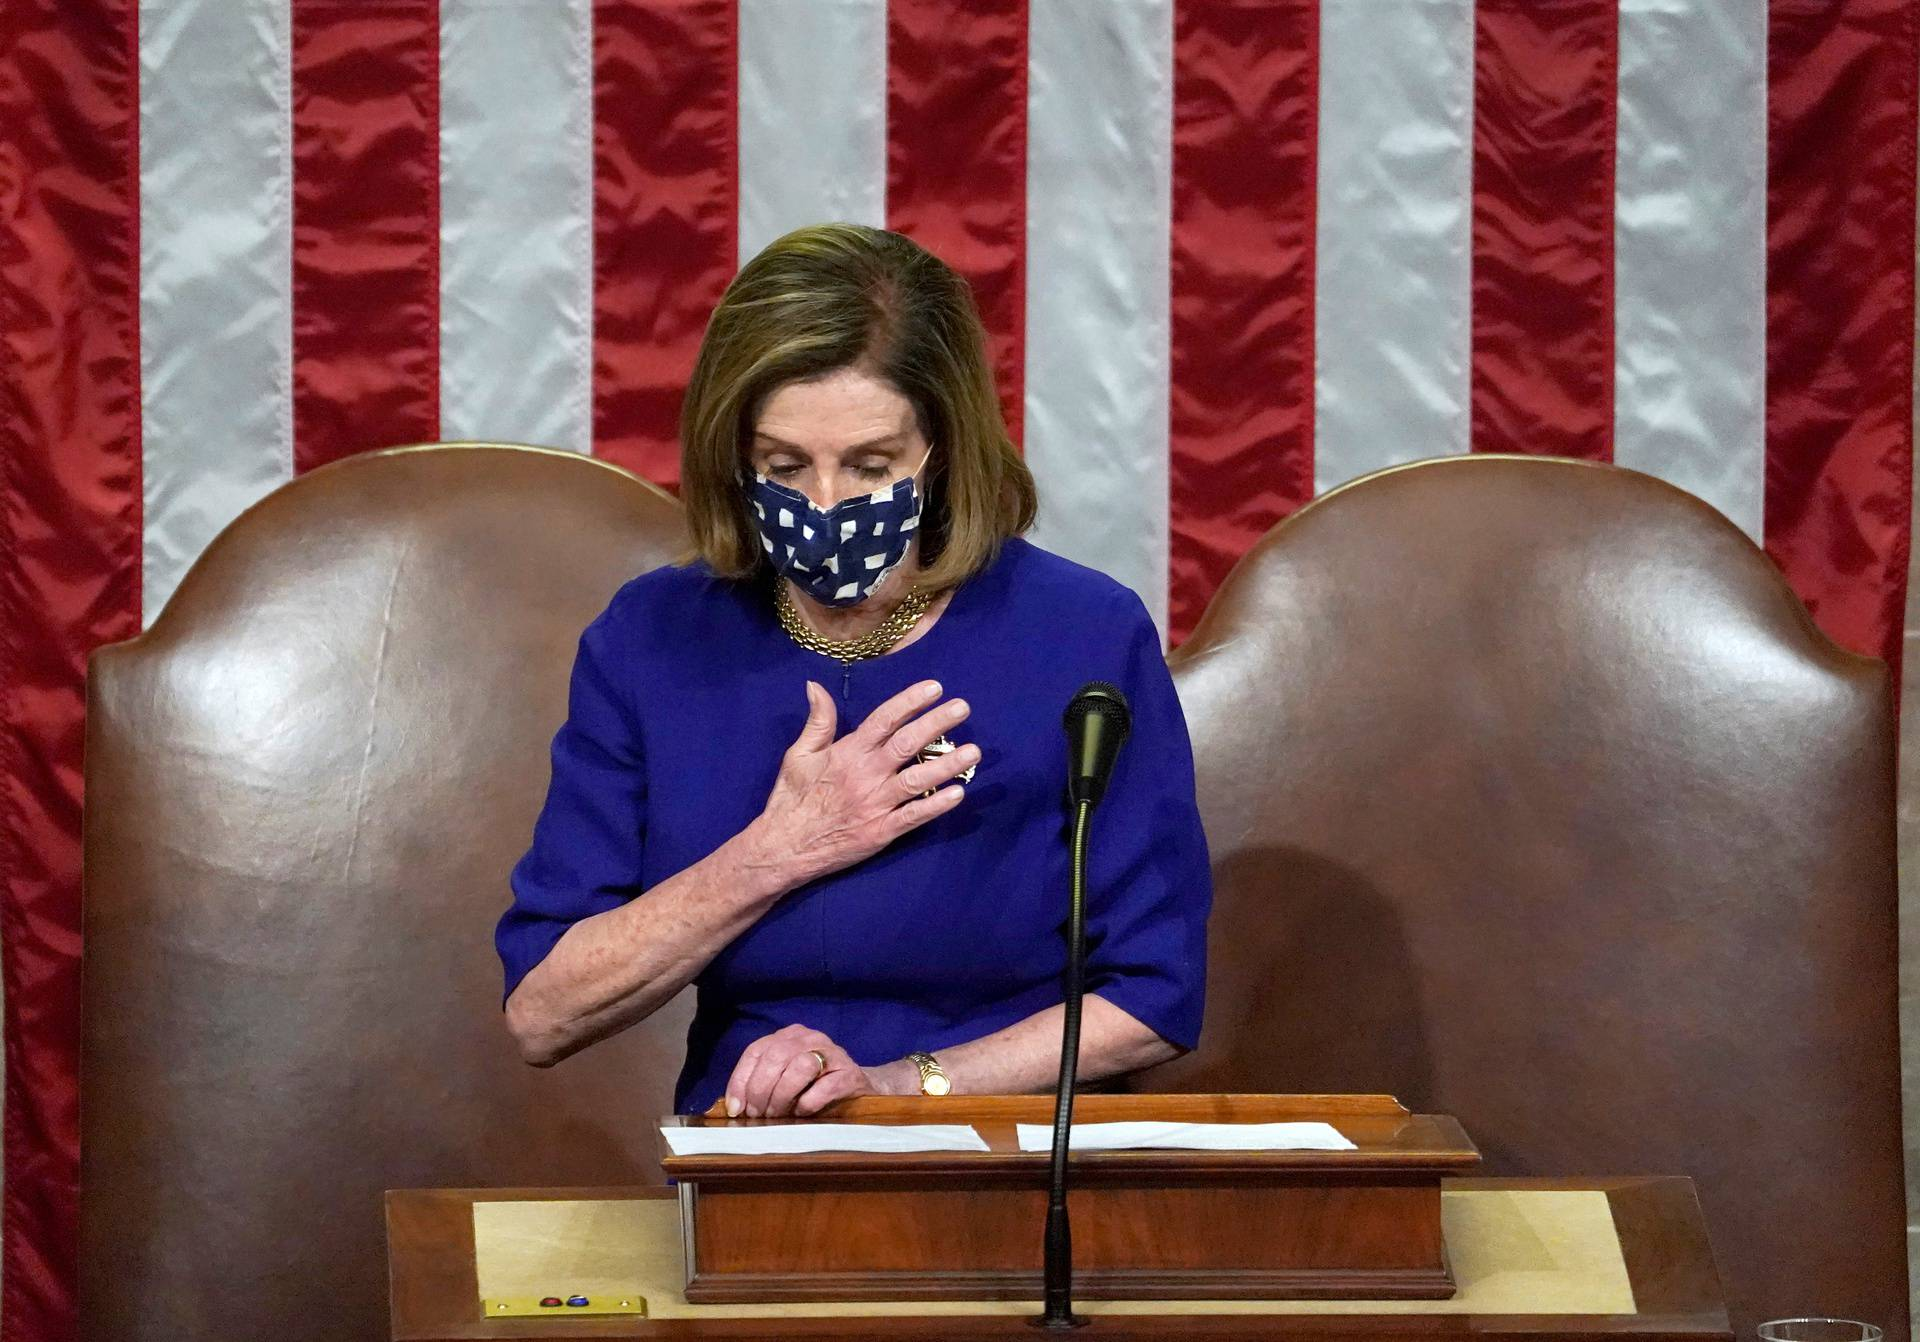 Speaker of the House Nancy Pelosi speaks during a joint session of Congress in Washington